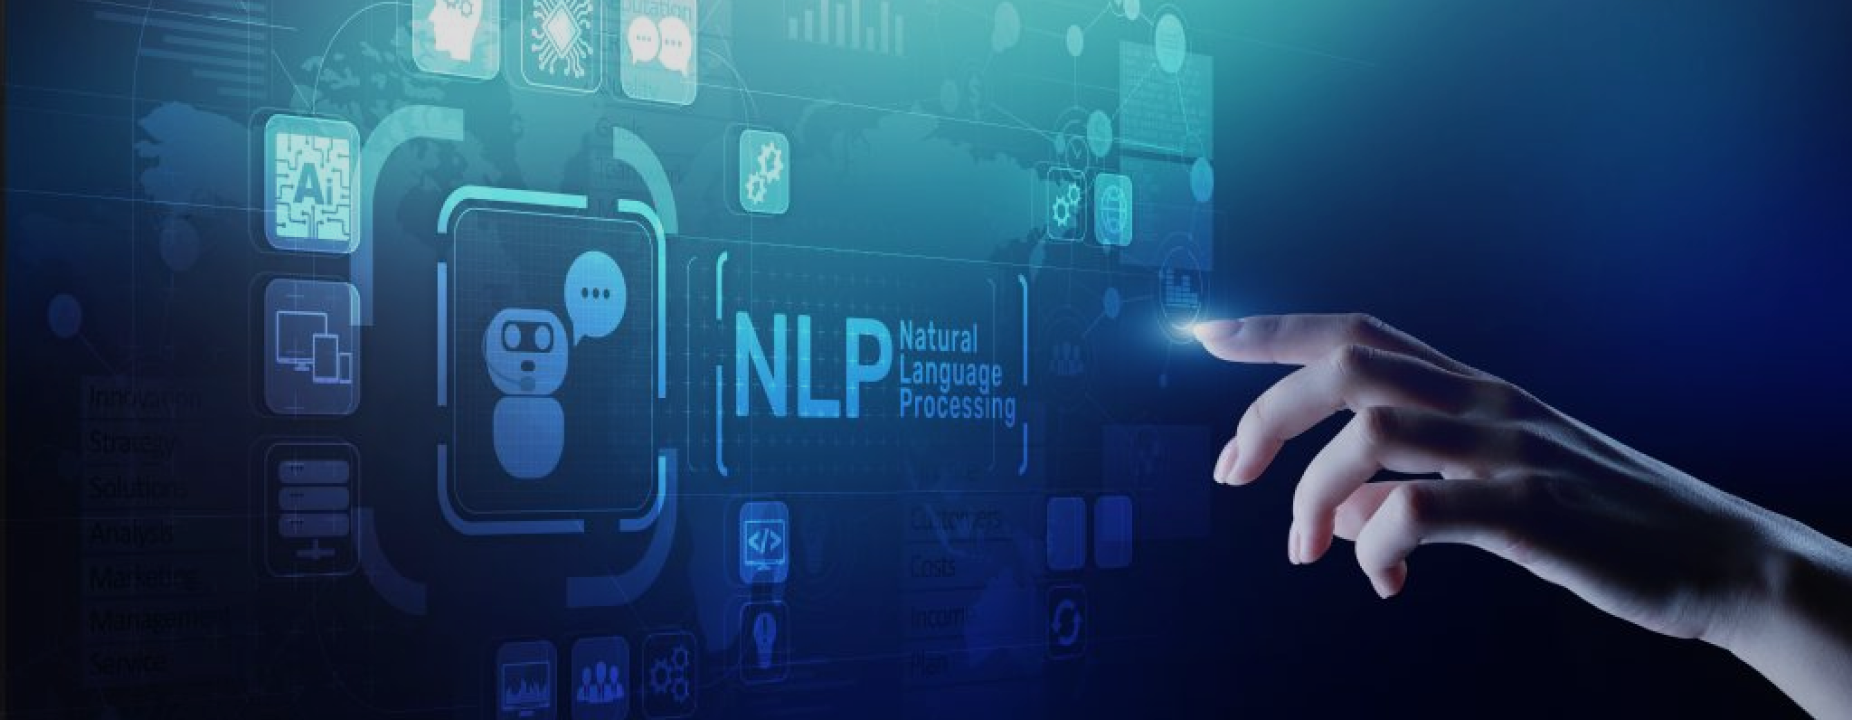 NLP in Enterprises: 4 Key Trends To Watch Out For In 2021